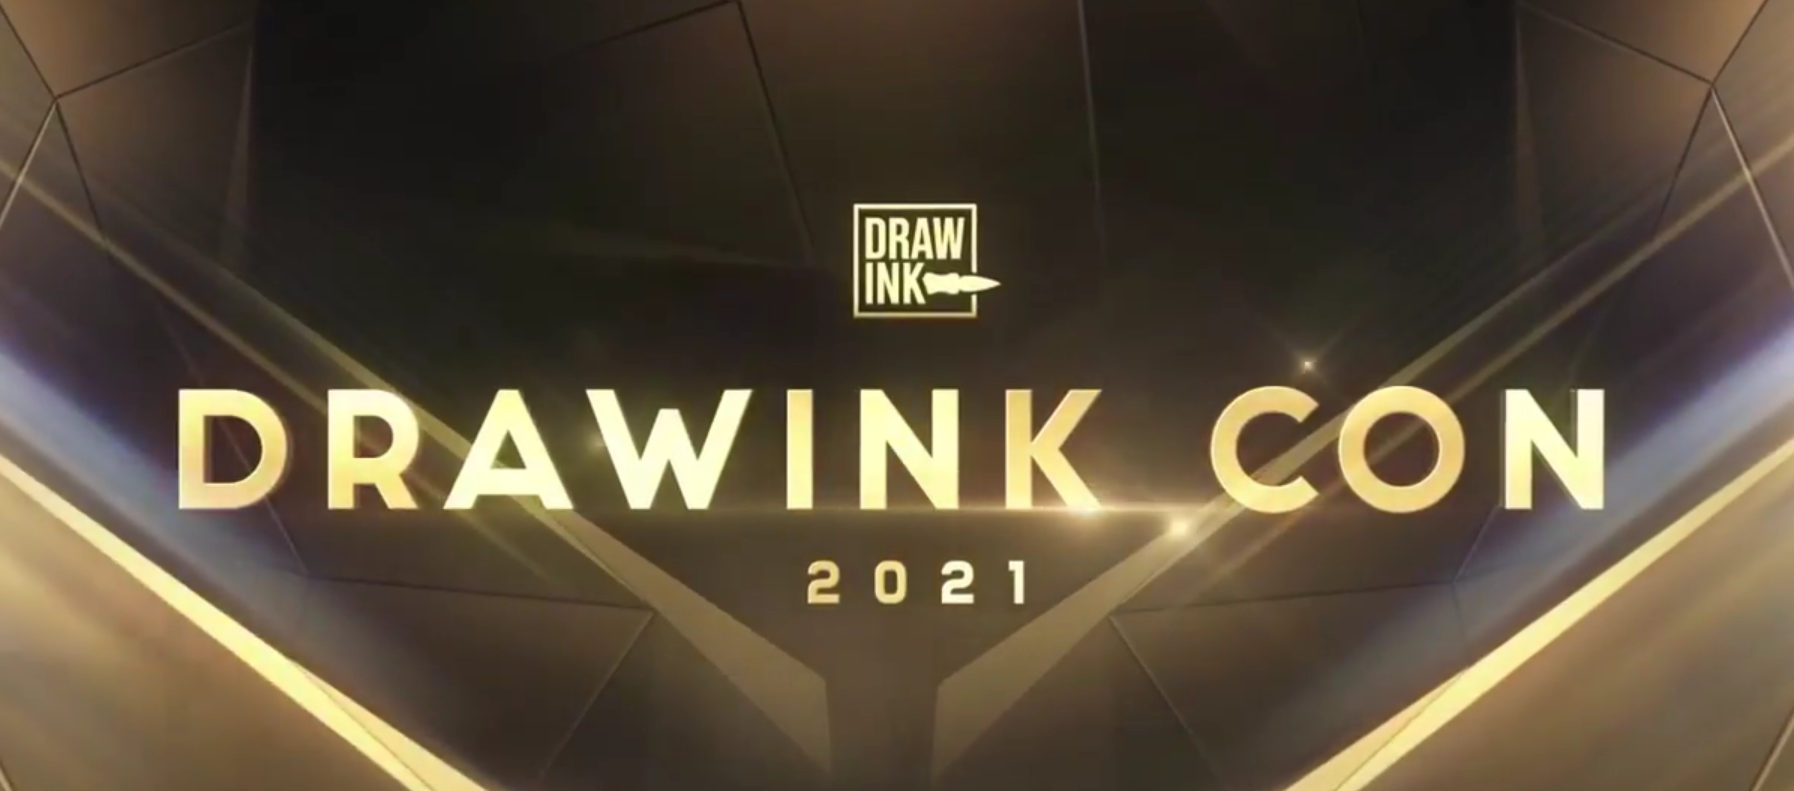 Cover Photo Taken From Drawink Con 2021